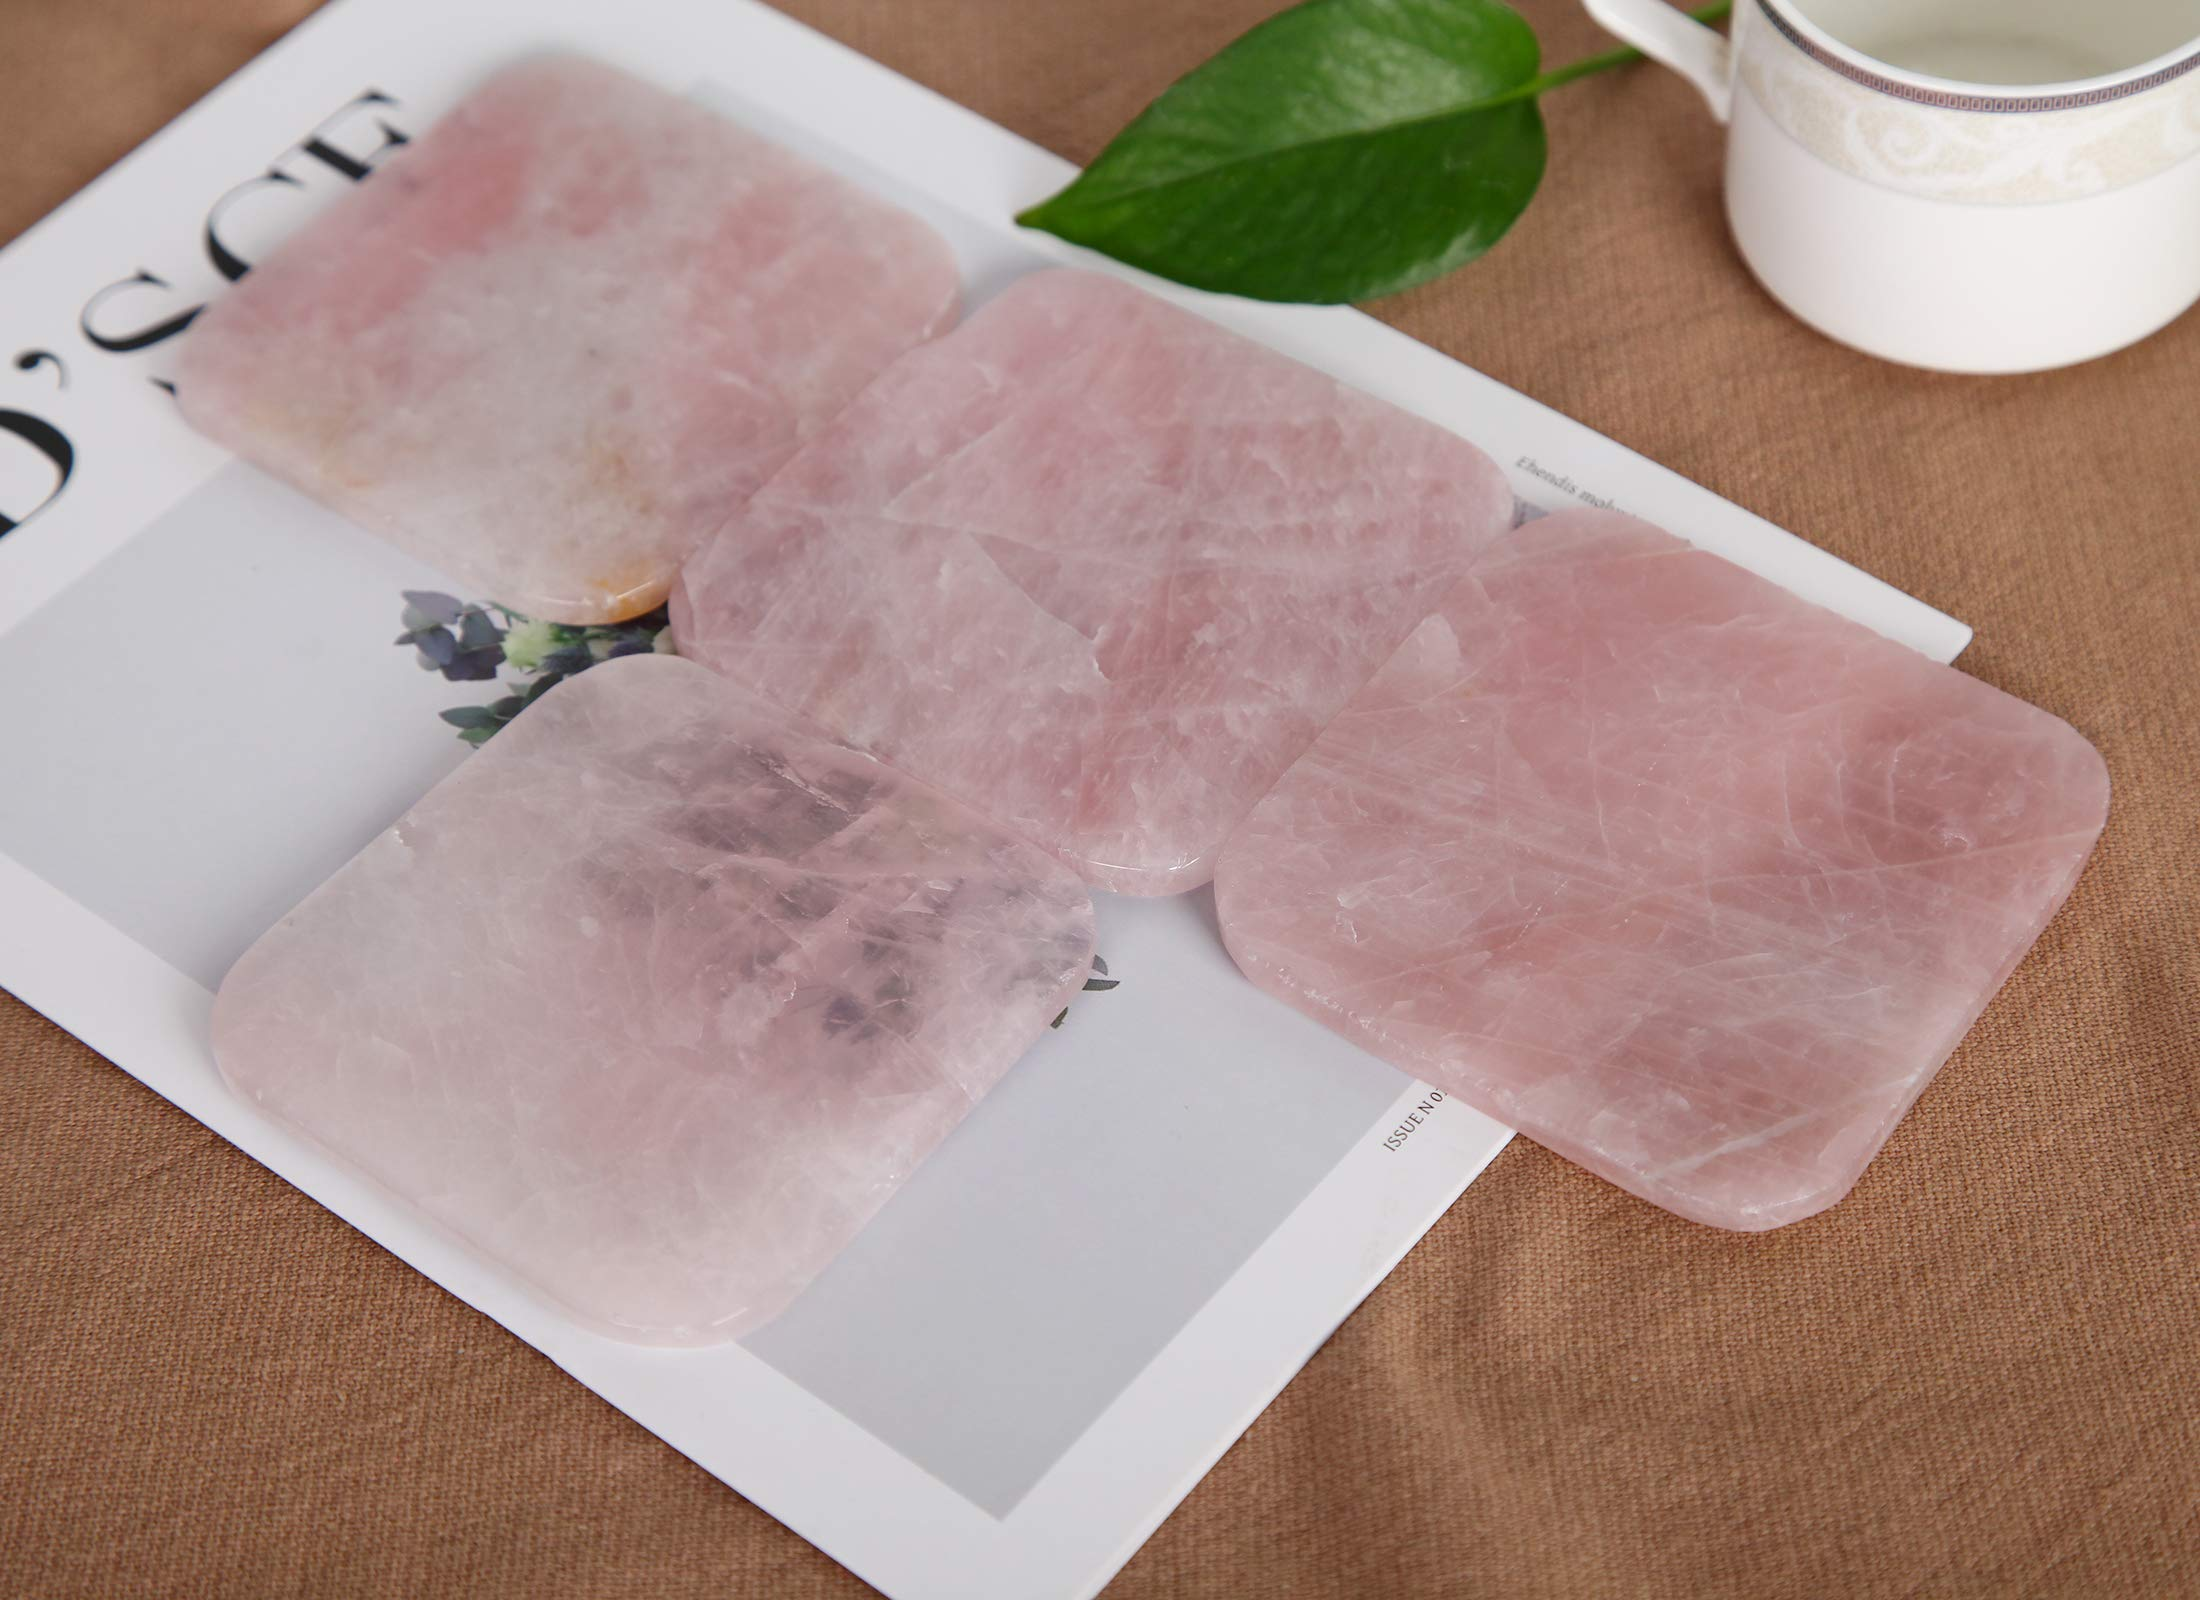 Rose Quartz Coasters Cup Mat Gemstone Geode Decor Slices Beverage Coasters for Drinks Gift with Rubber Bumper 3.5'' Set of 4 Square